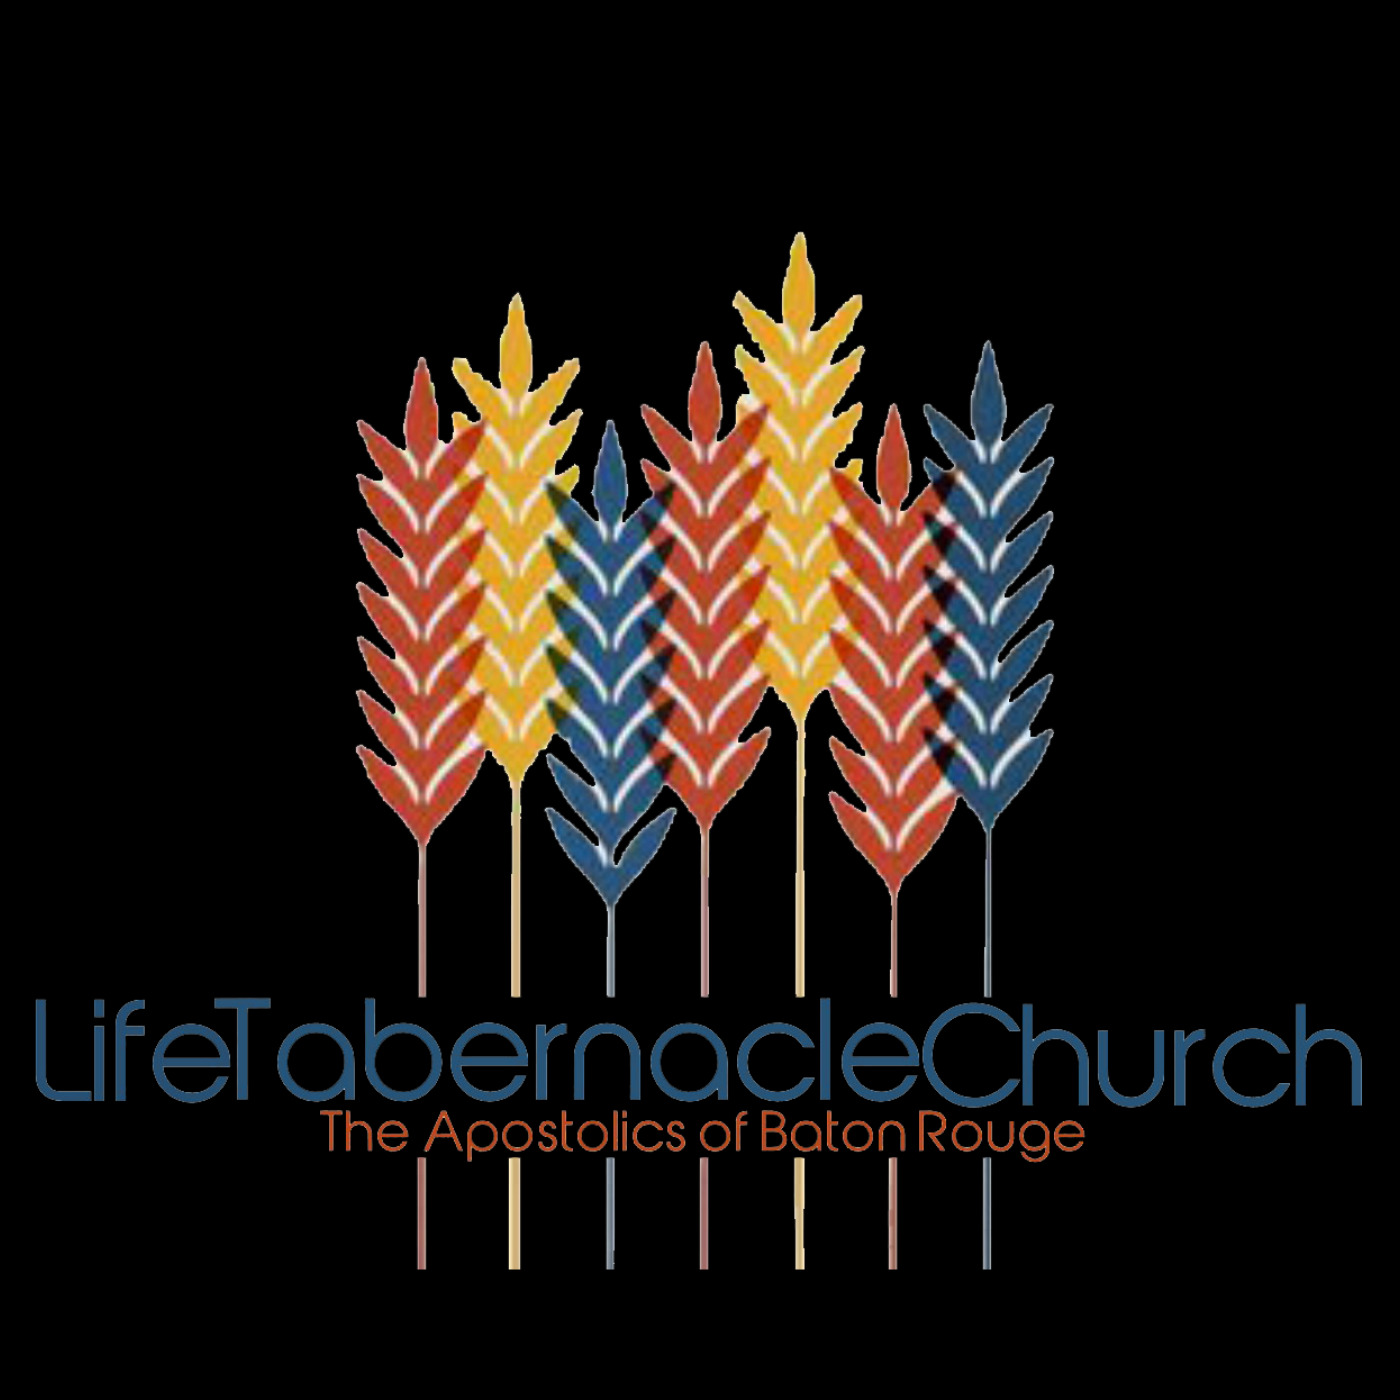 Life Tabernacle Church